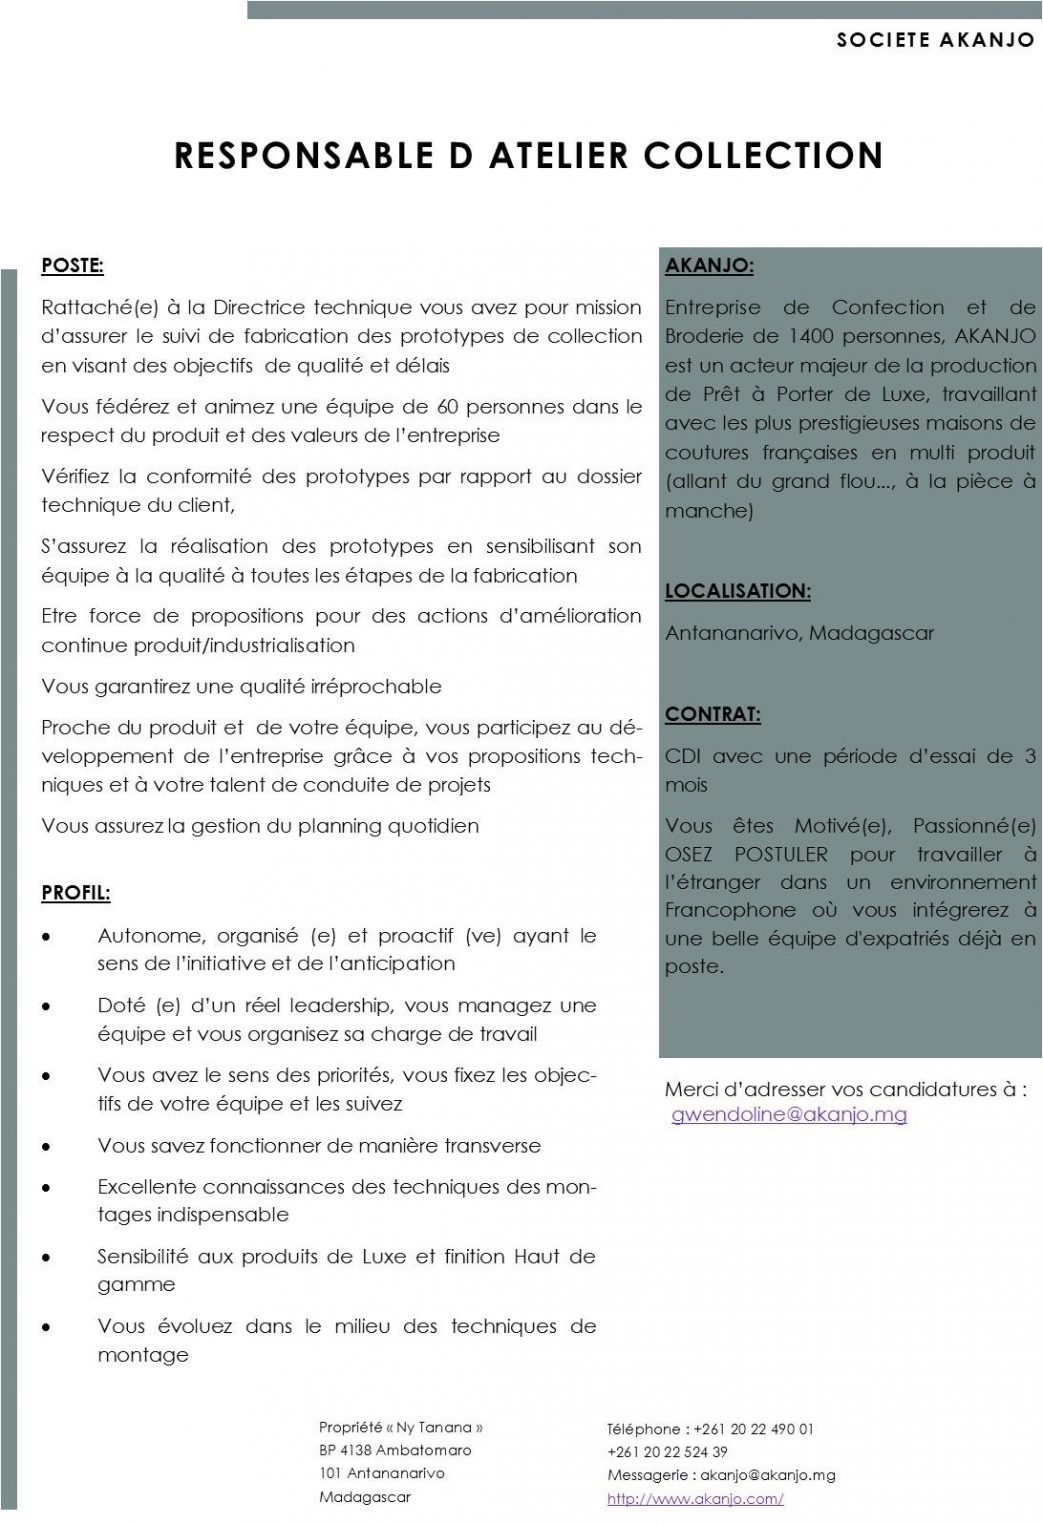 responsable atelier collection